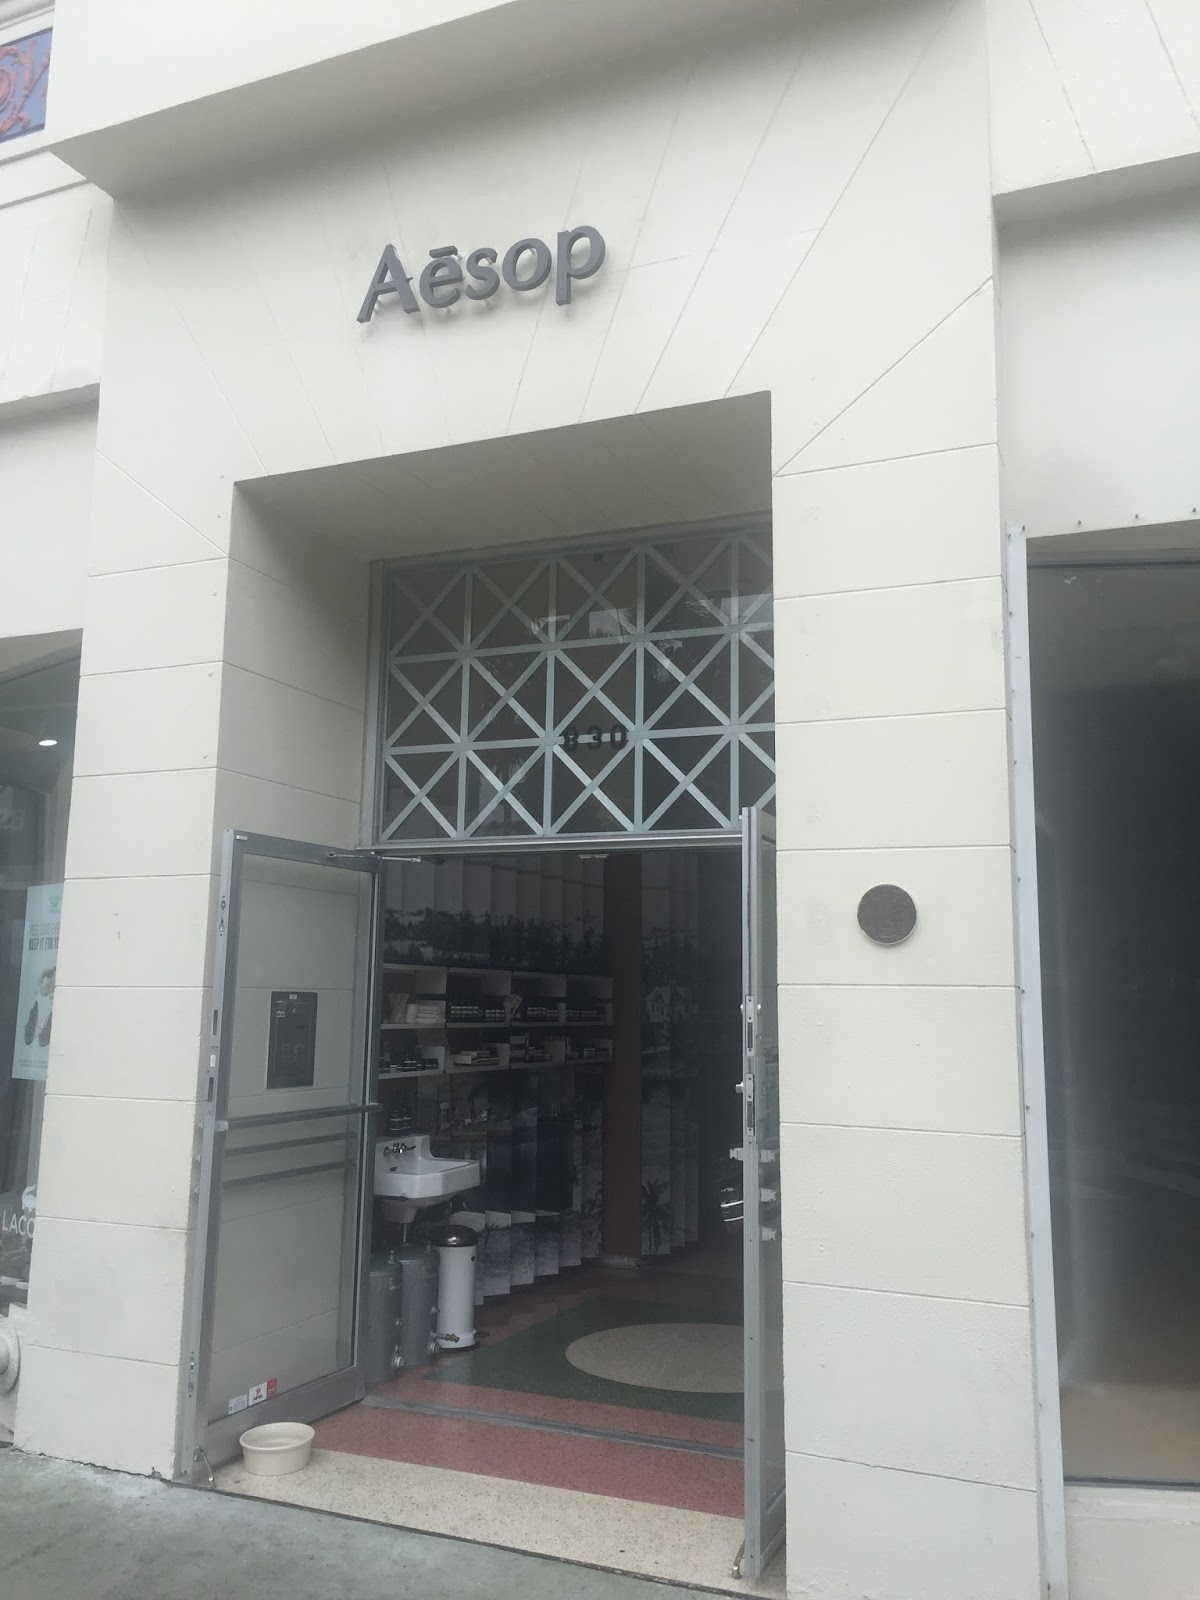 Aasop chanel, cupcakes,cameras and crayons: review: aesop